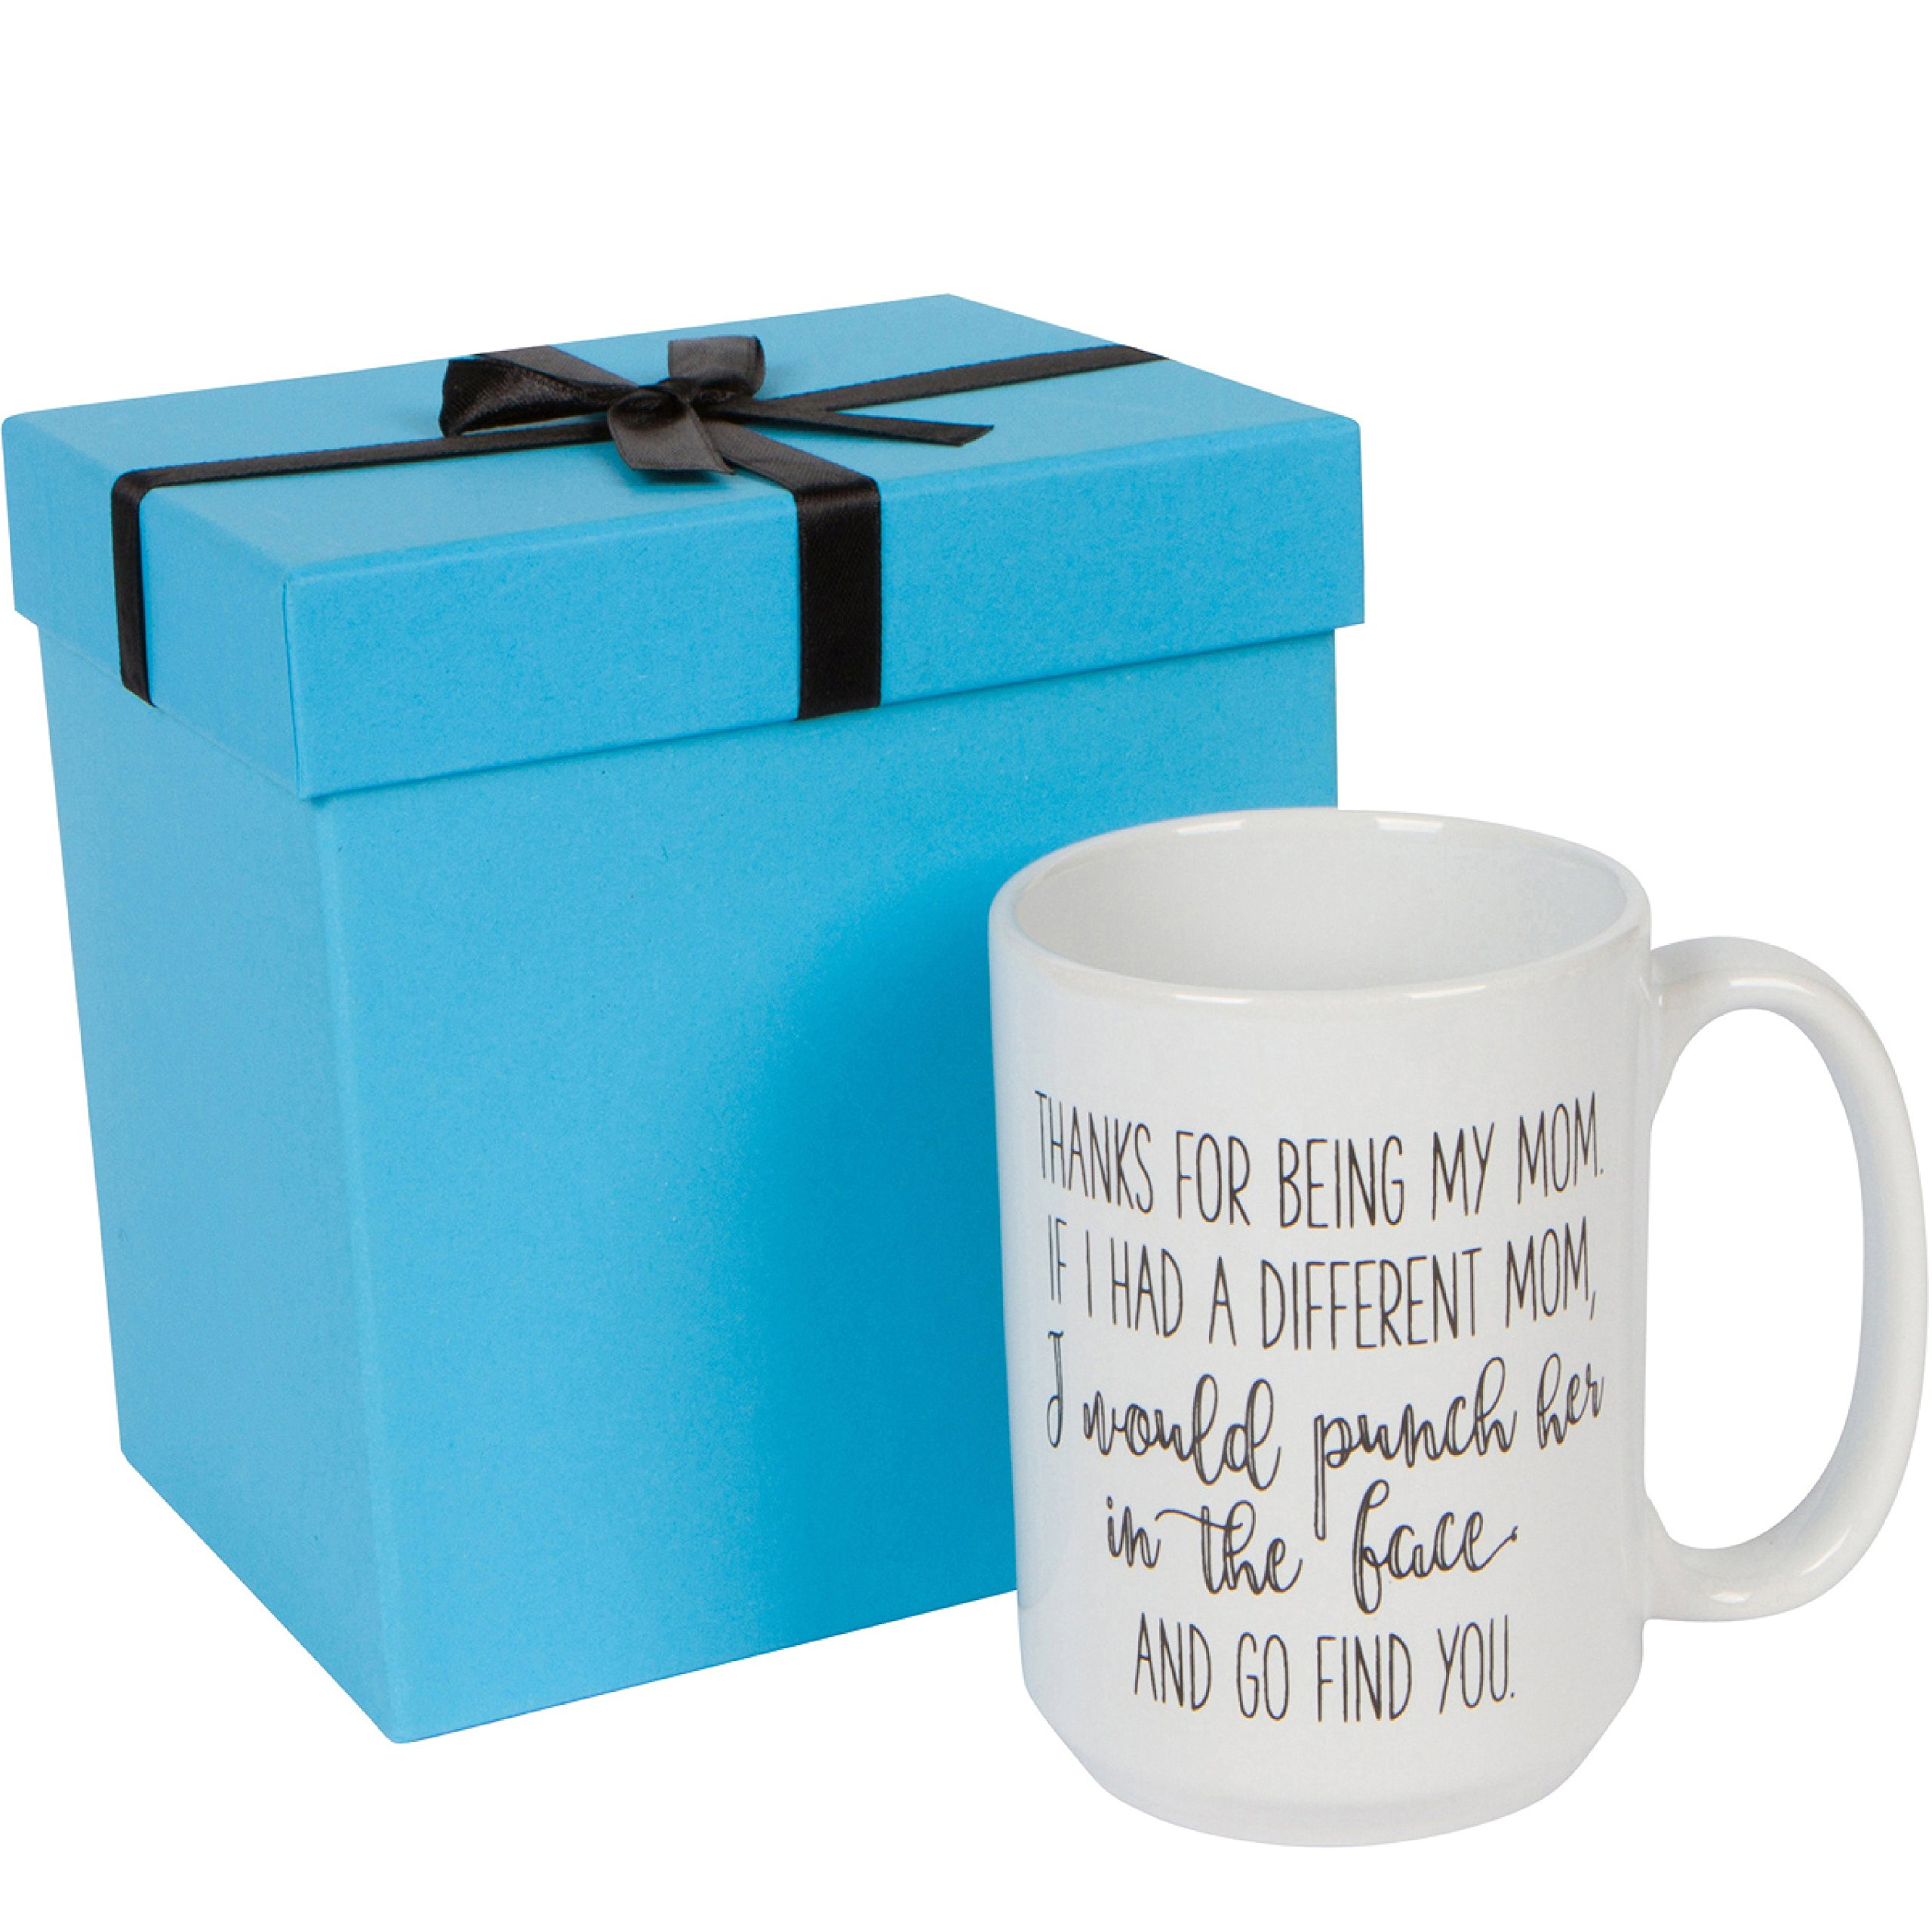 Mom Birthday Gift - Thanks For Being My Mom, If I Had a Different Mom, I Would Punch Her In The Face and Go Find You | 15 Oz Ceramic Coffee Mug | Funny Birthday Gift For Mom Mug | Gift Wrapped by Saltwater Blue Glassware